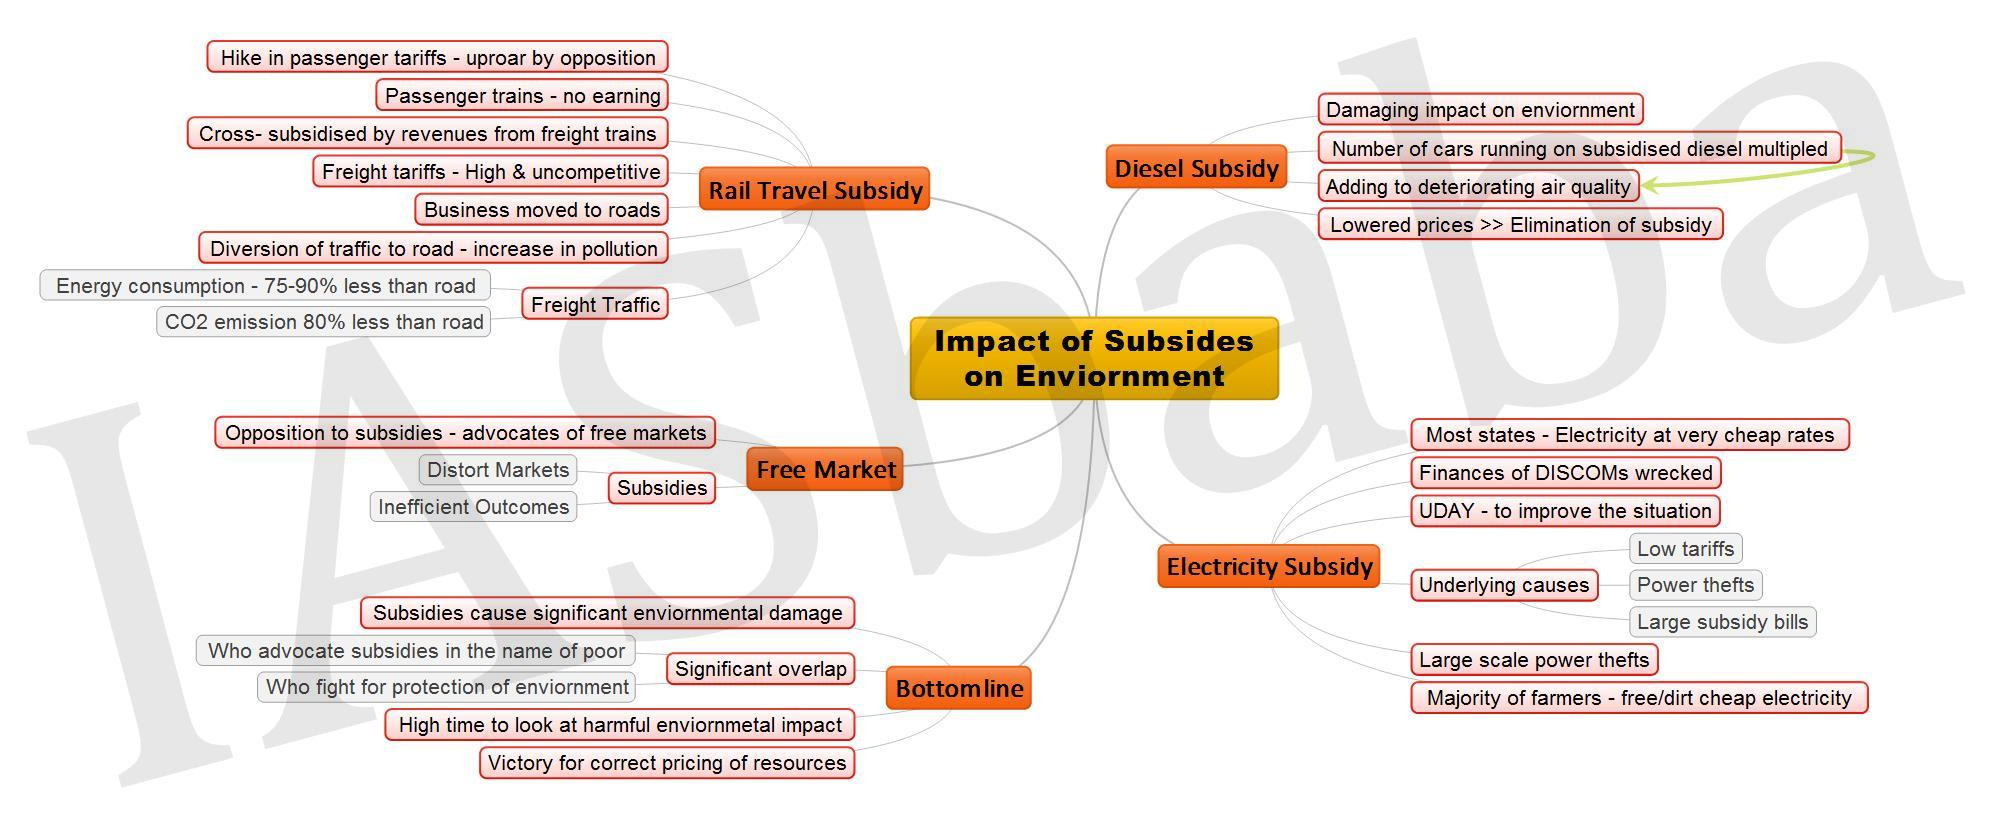 Impact of Subsides on Enviornment JPEG